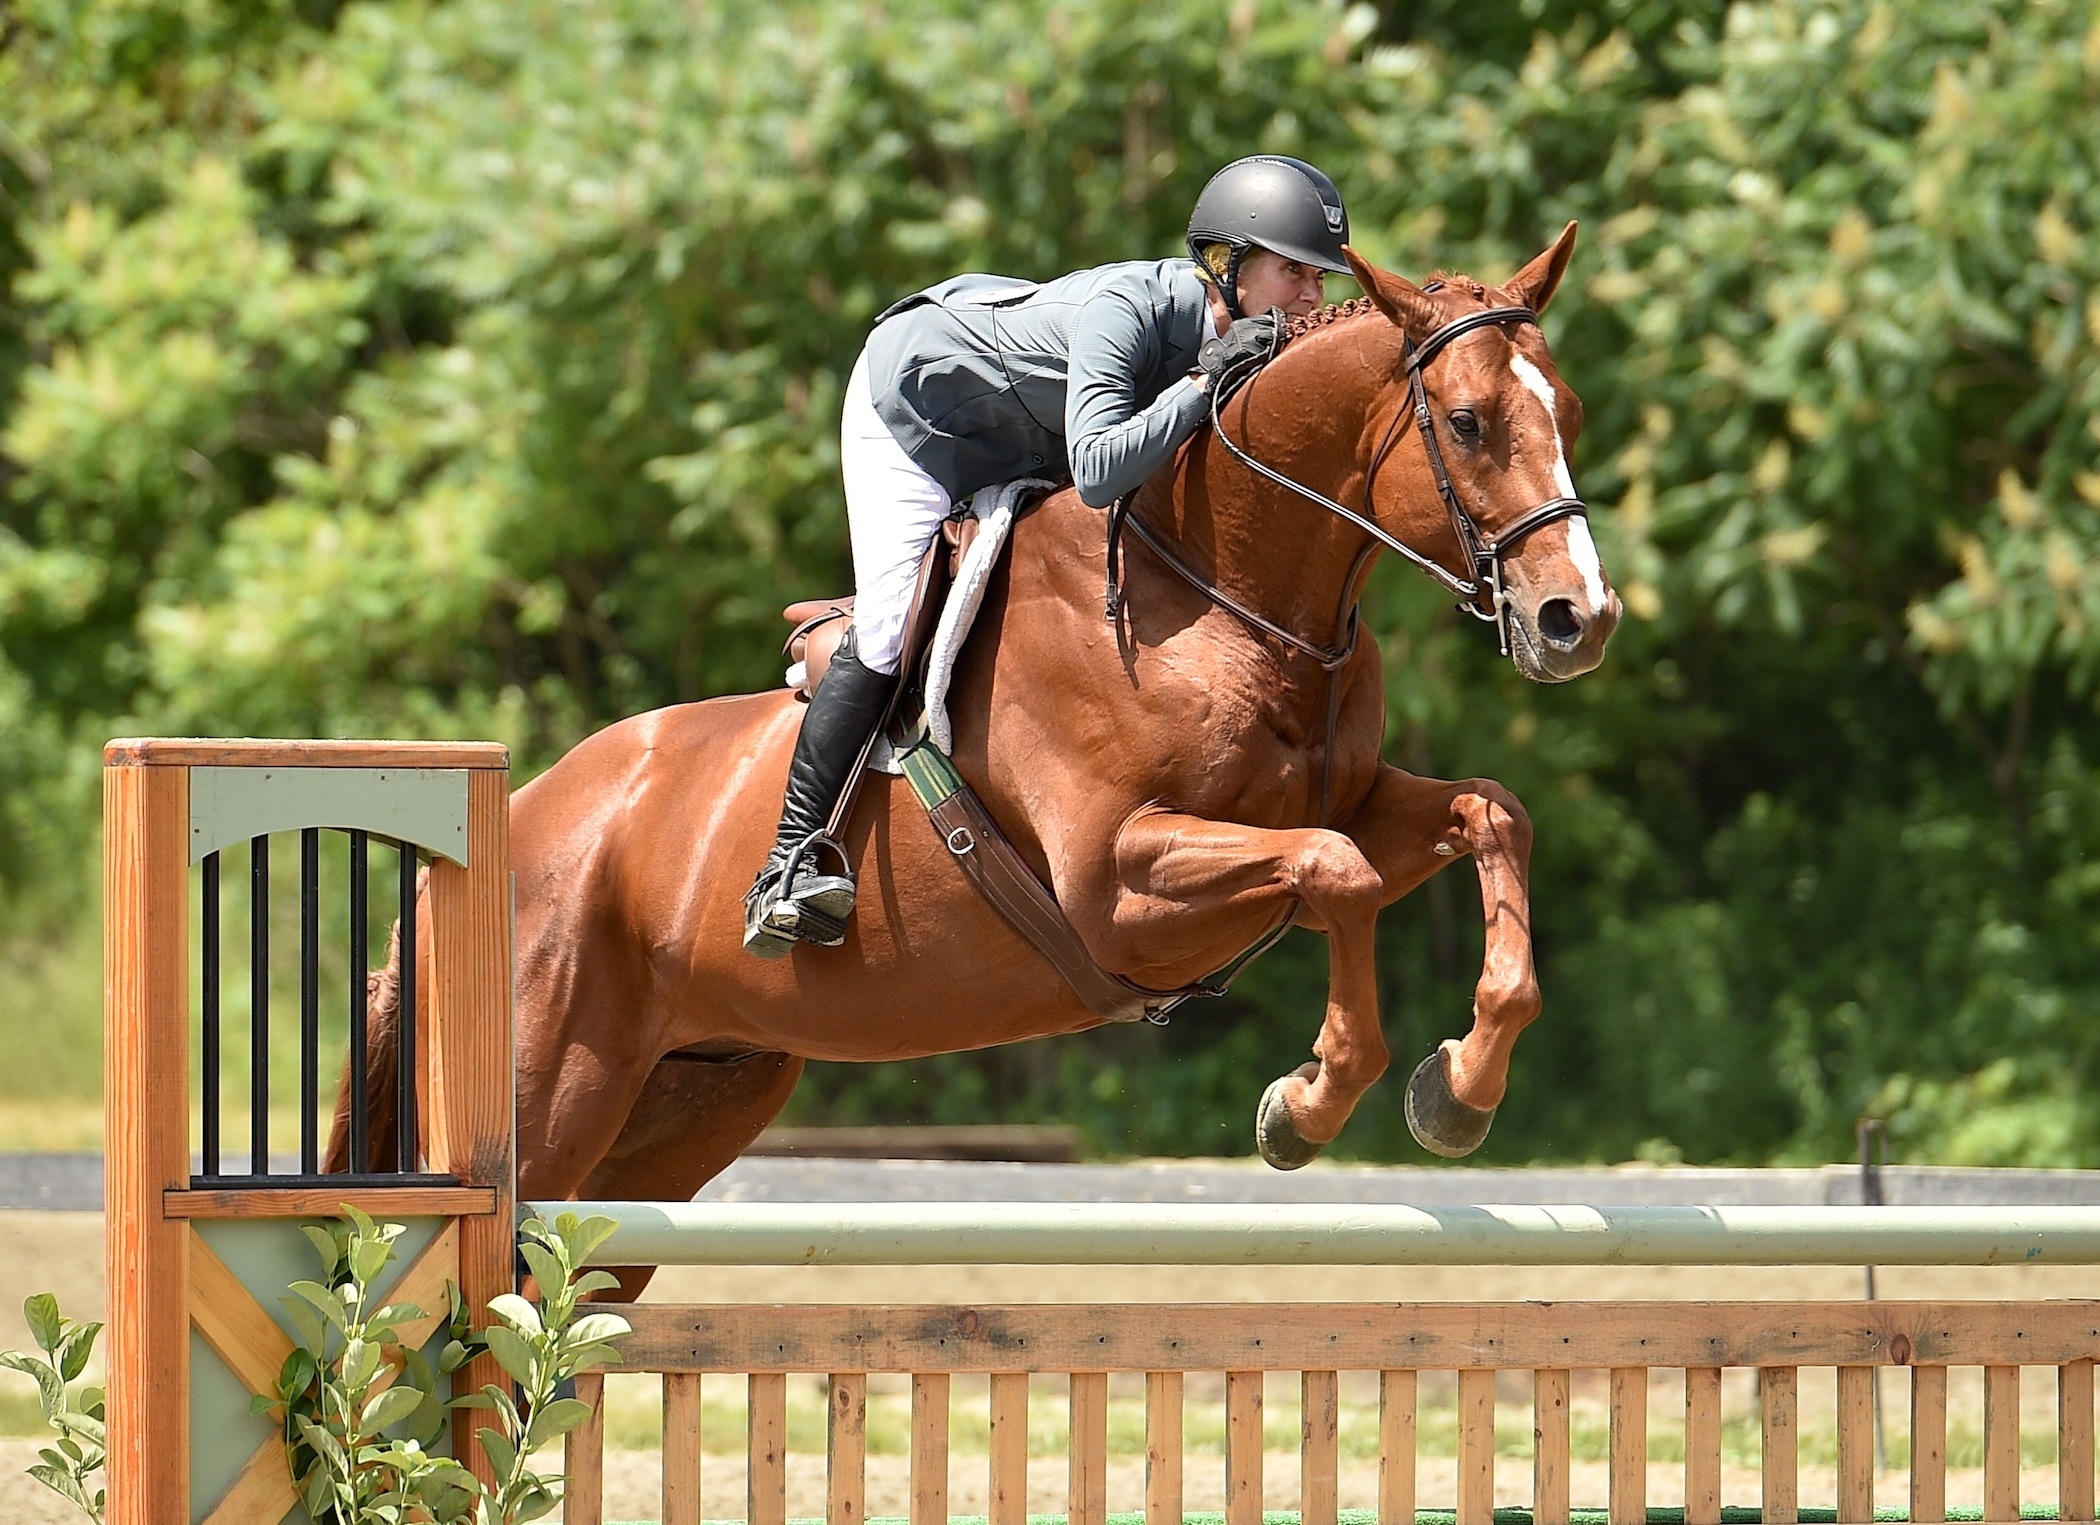 Southern Charm, ridden by Lainie Wimberly, was named champion of the TAKE2 Thoroughbred Hunter Division during opening week of the 2018 Vermont Summer Festival in East Dorset, VT.<br><b>Photo by <a href='http://www.andrewryback.com/' target='_blank'>Andrew Ryback Photography</a></b>